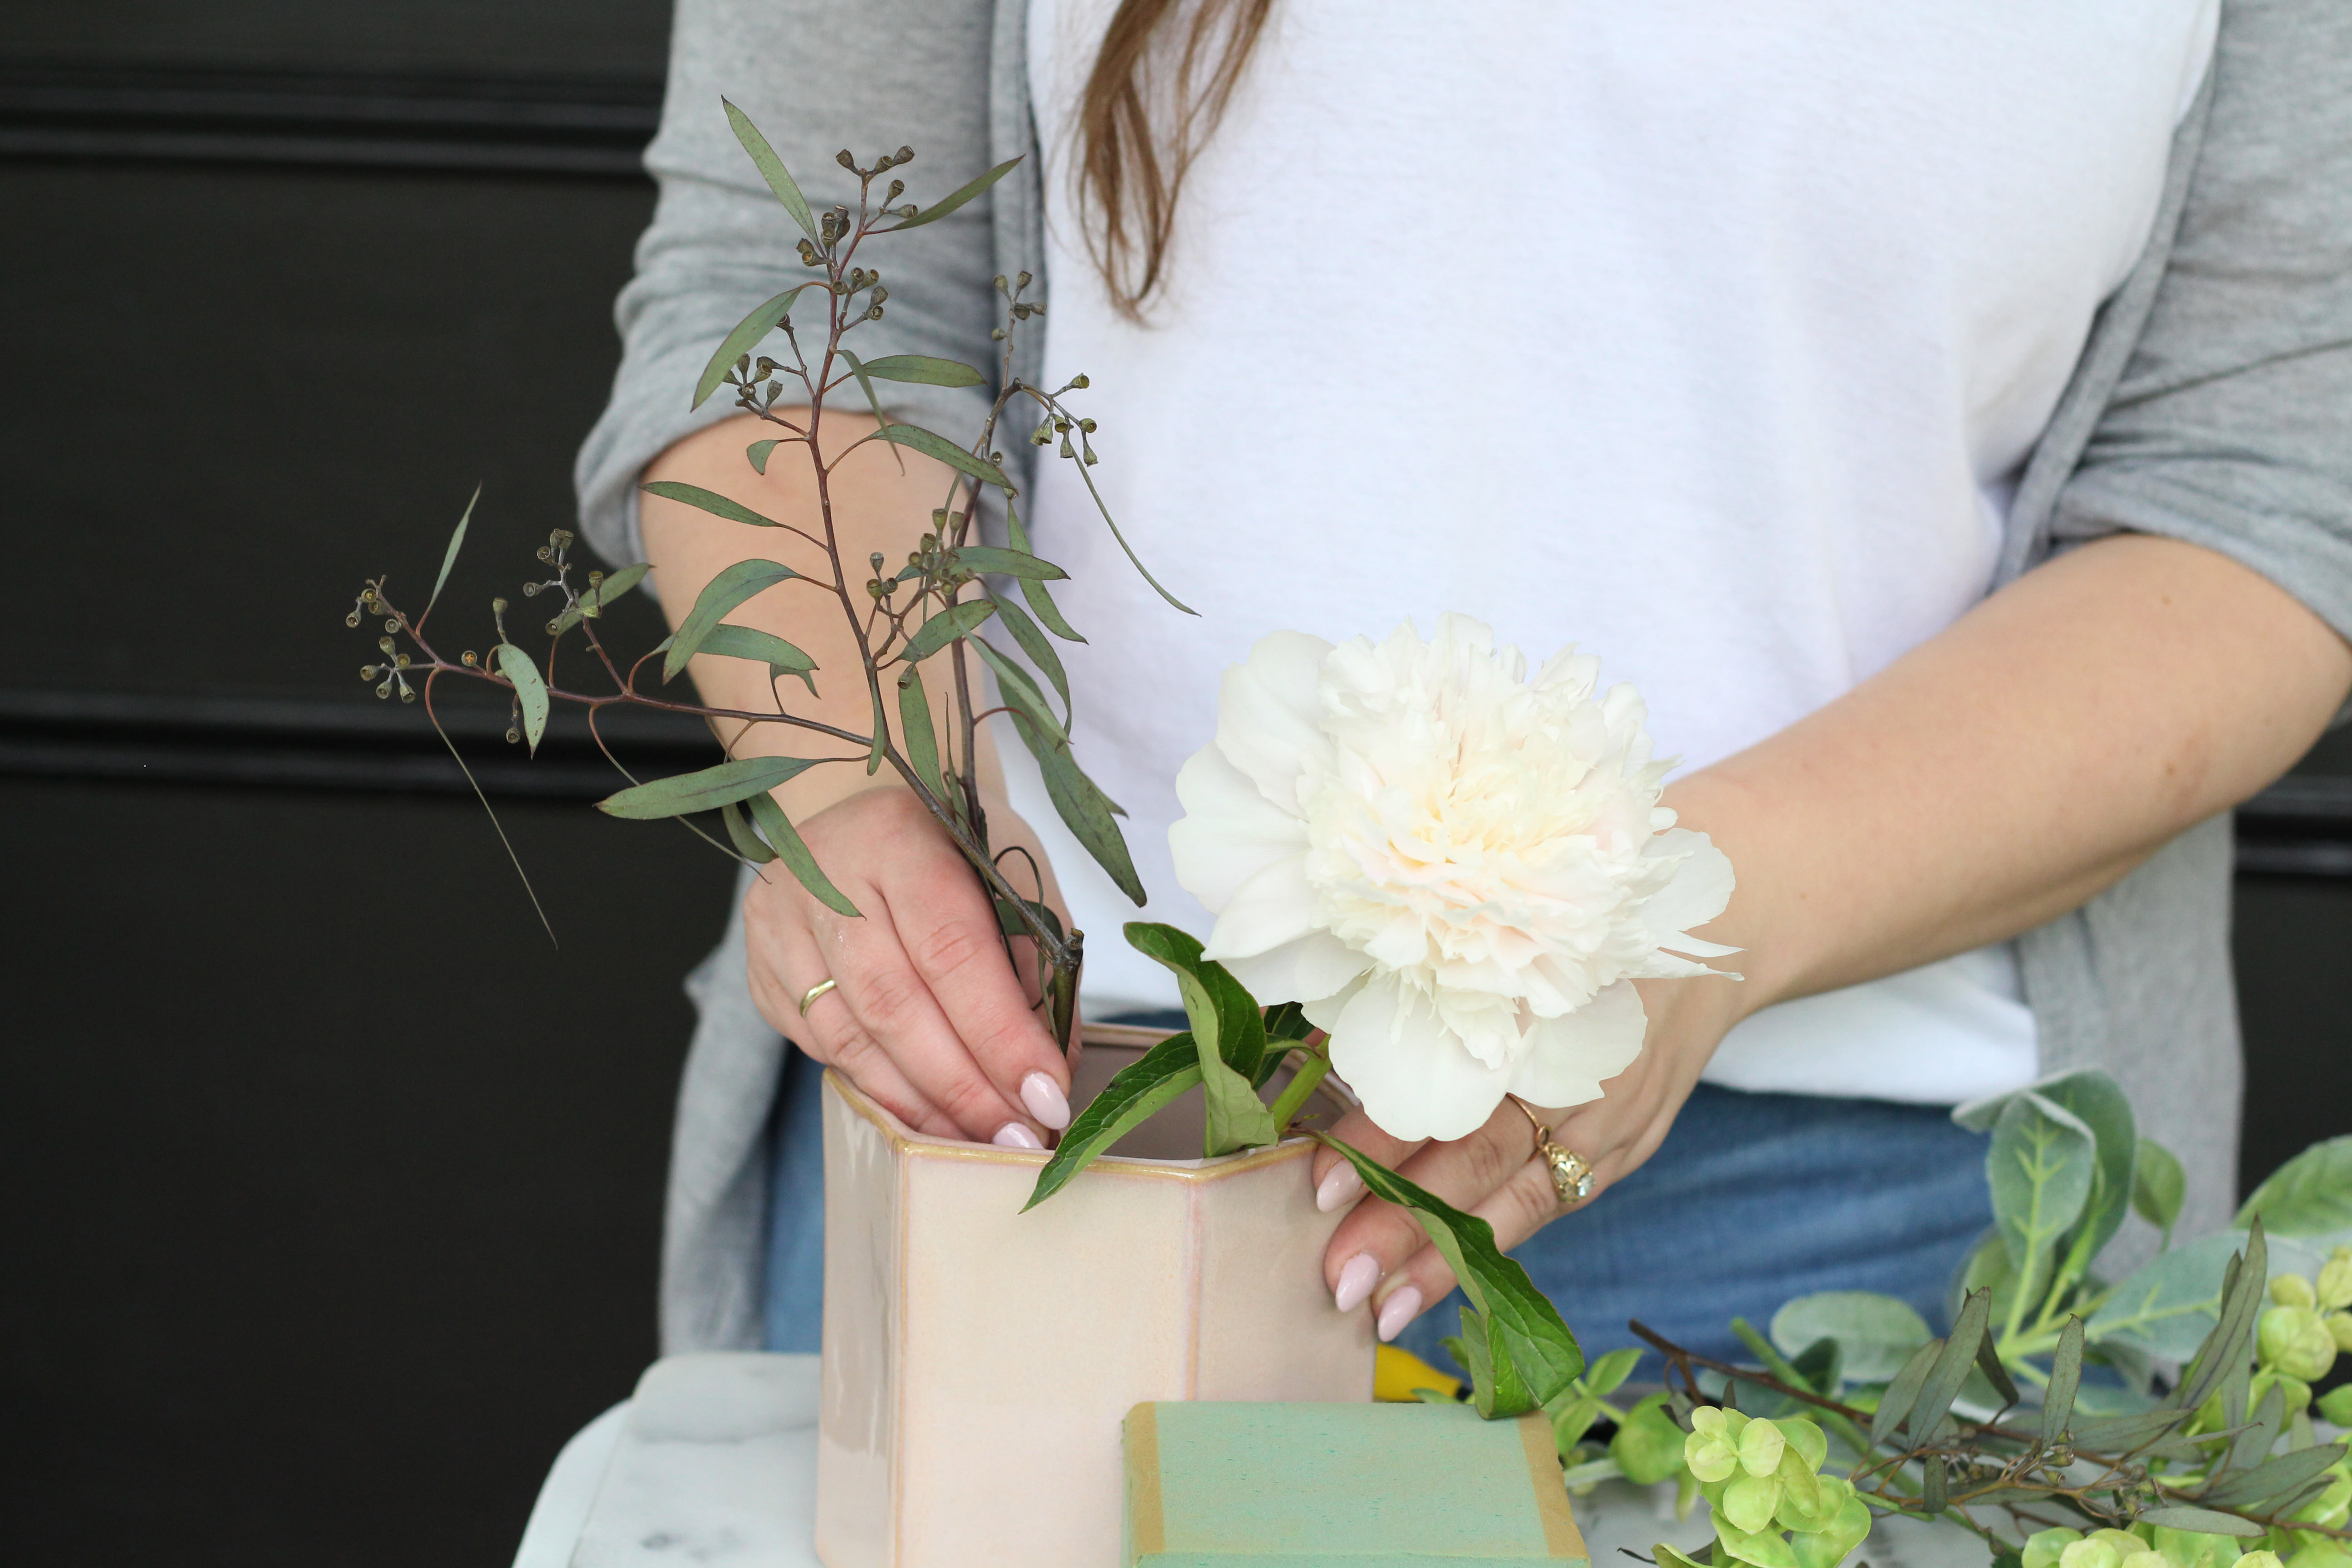 Step-by-step instructions for floral arrangements using both real and faux flowers